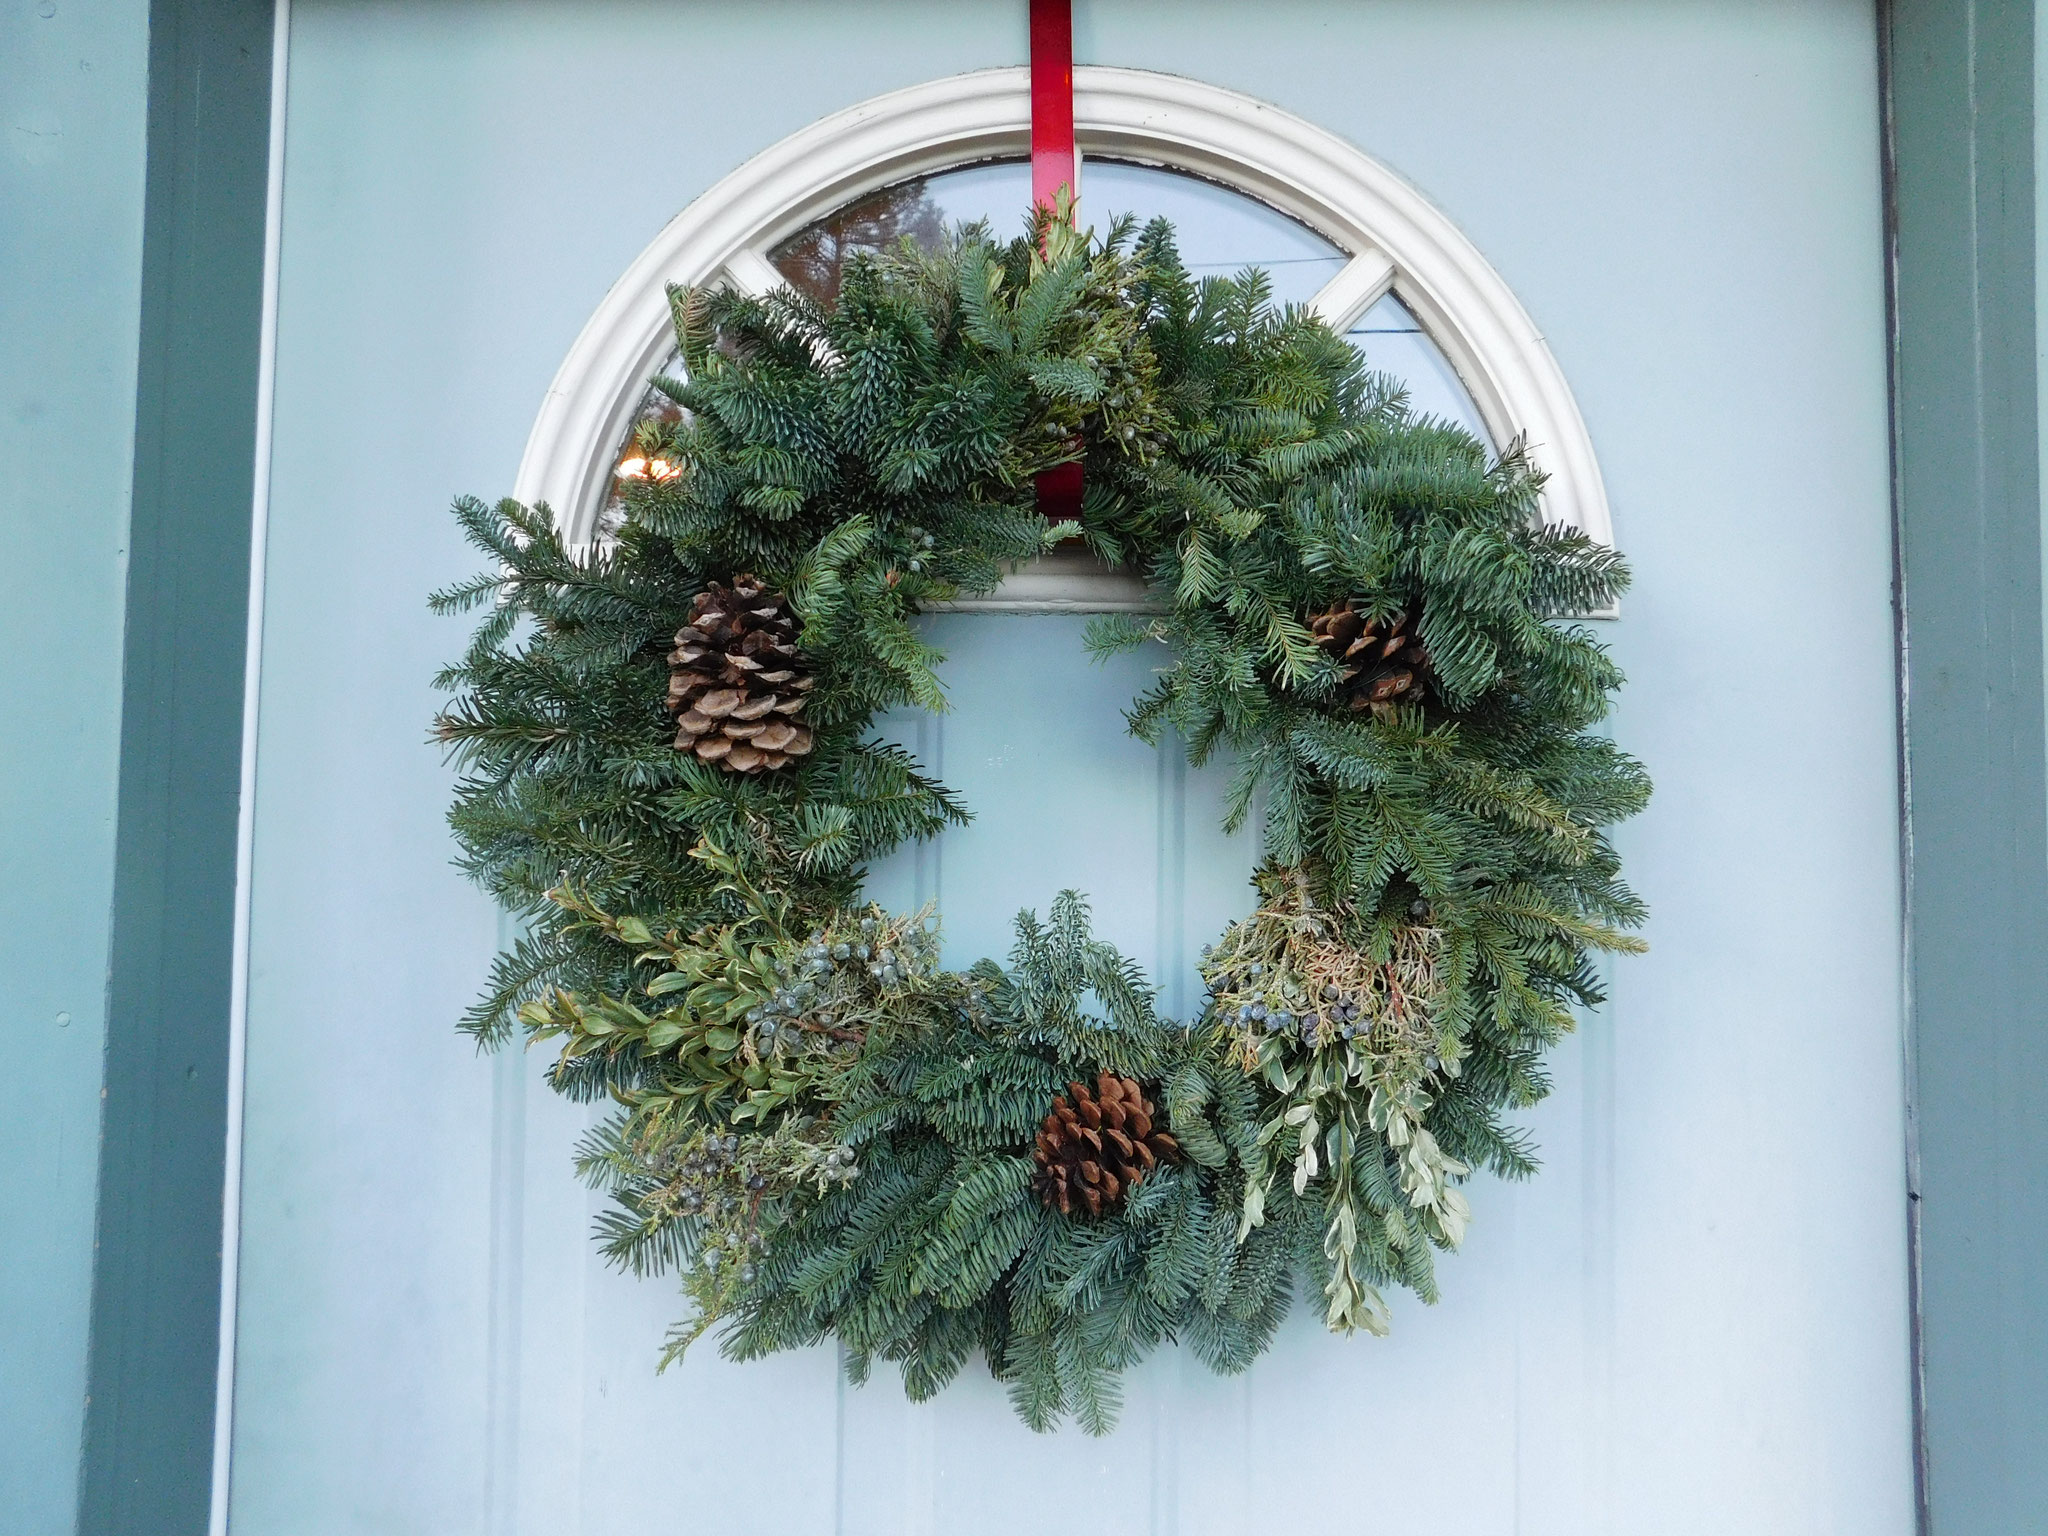 Christmas wreath from Village Nursery.